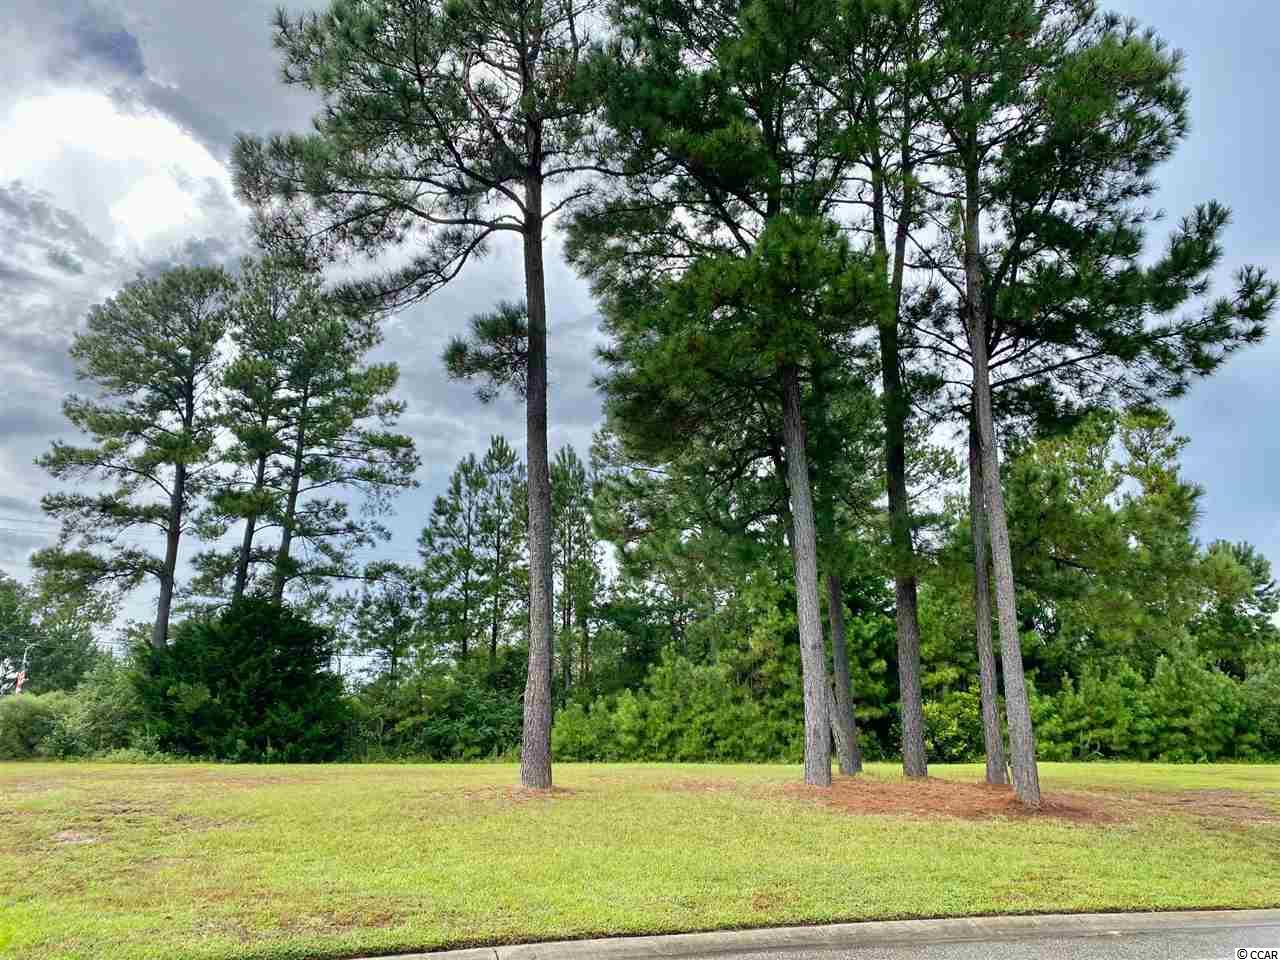 Welcome to this hidden gem in Little River, SC that has some of the most beautiful homes. Build your Dream Home in the prestigious Waterfall community, a quiet tucked away community with an 8.5 acre lake.   This community is gated with a beautiful amenity center, a weight room and a pool. This beautiful lot is only minutes away from shopping, dining, and Cherry Grove beach, NMB sports complex and the dog park.